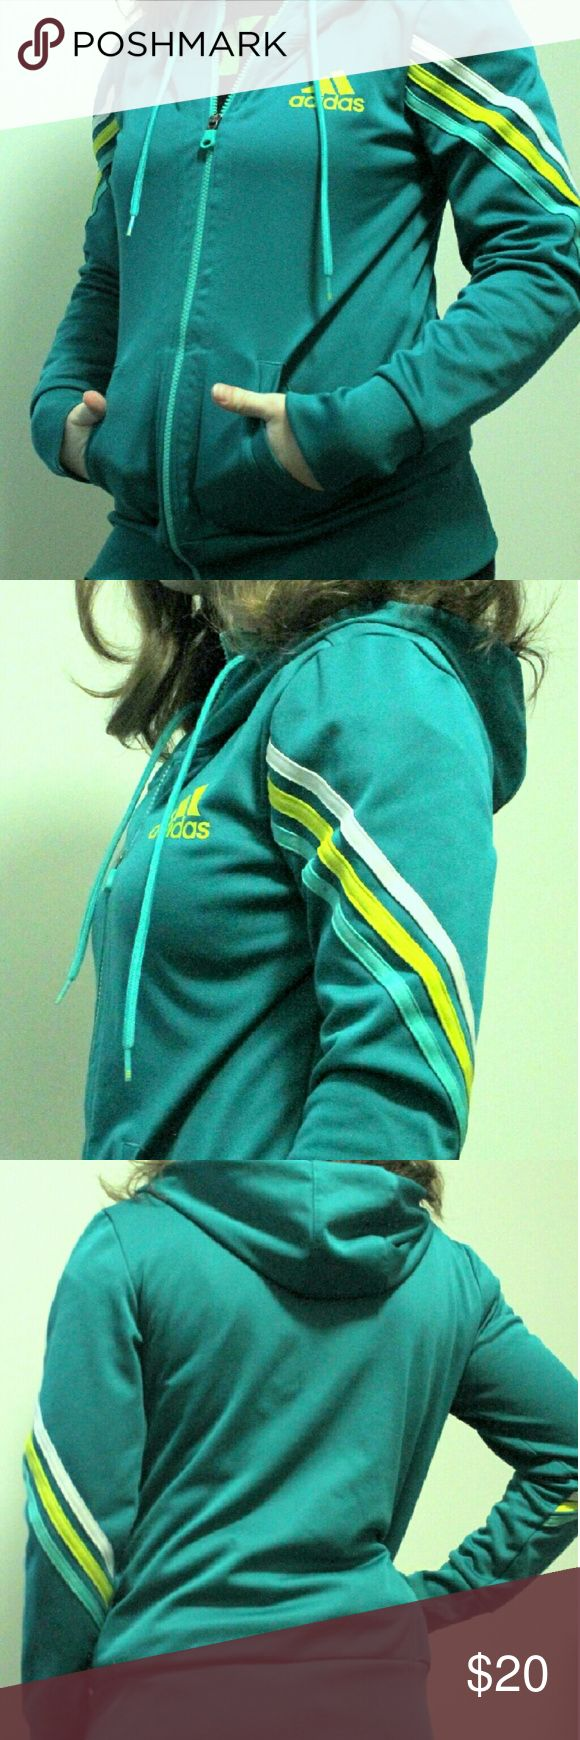 Green Zip Up  Athletic Hoodie Athletic zip up  Great condition  Lightweight but very warm Adidas Tops Sweatshirts & Hoodies